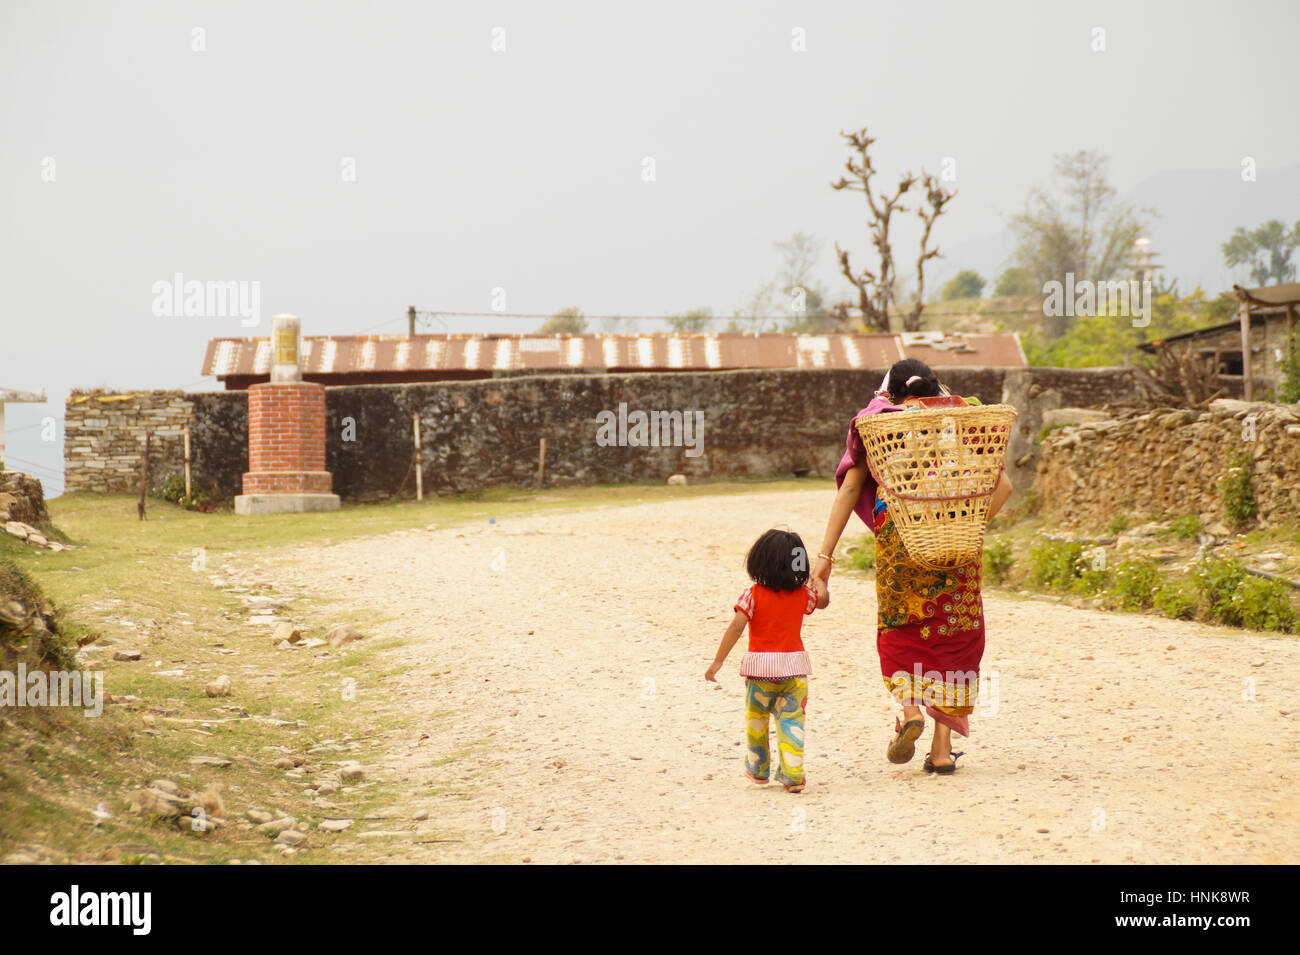 People in Nepal, third world - Stock Image